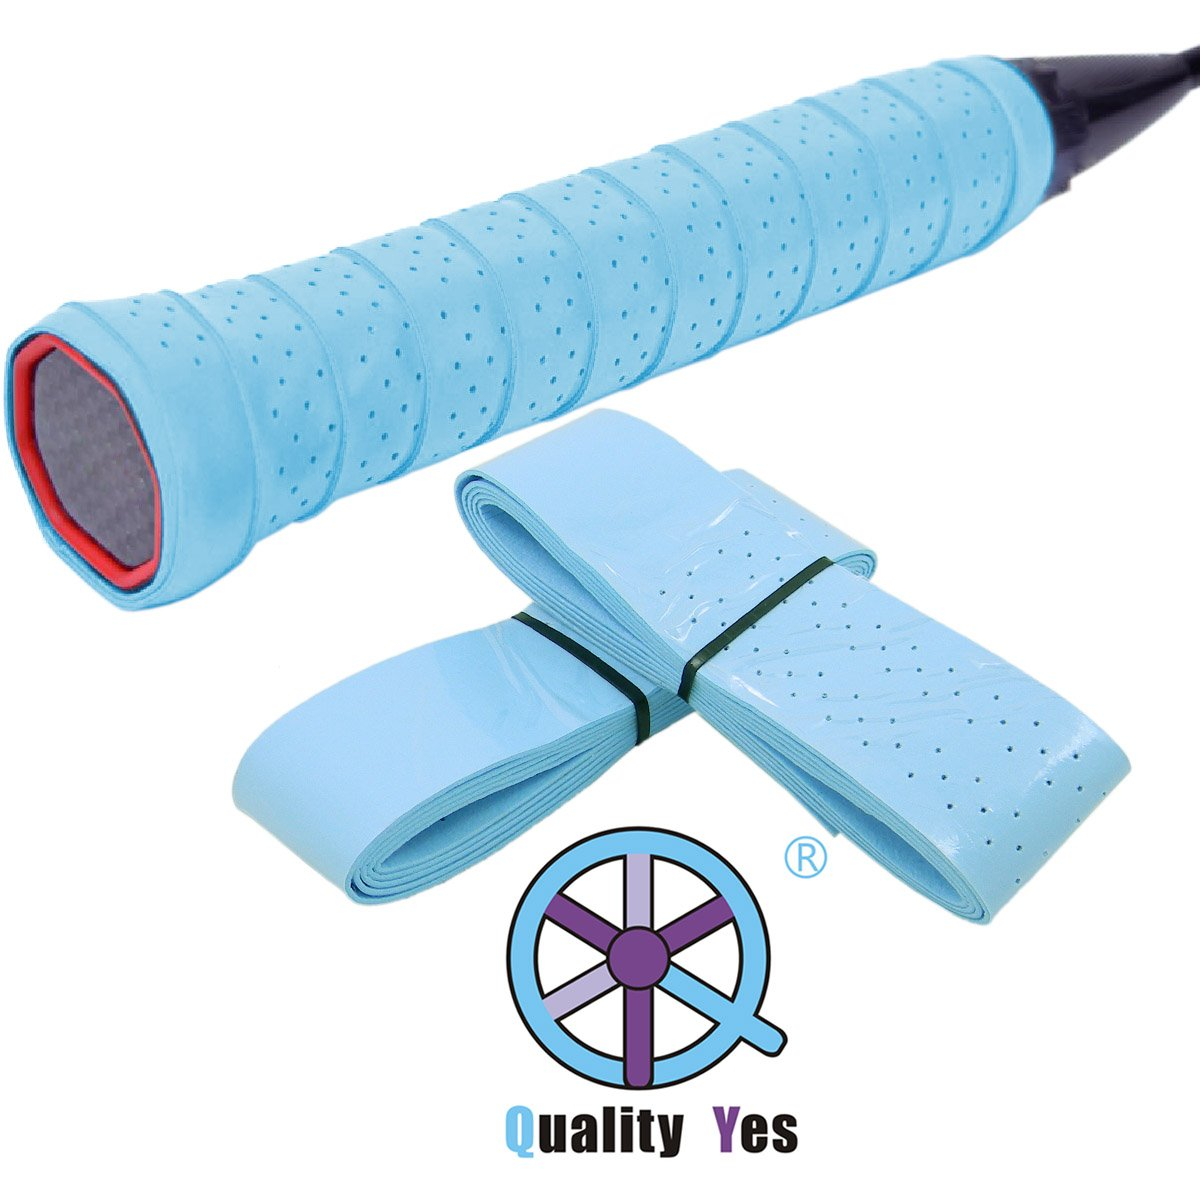 QY 2Pack Widened Perforated Super Absorbent Tennis Racket Overgrip Anti Slip Badminton Racket Tape Wrap Table Tennis Racket Tape, Light Blue Color